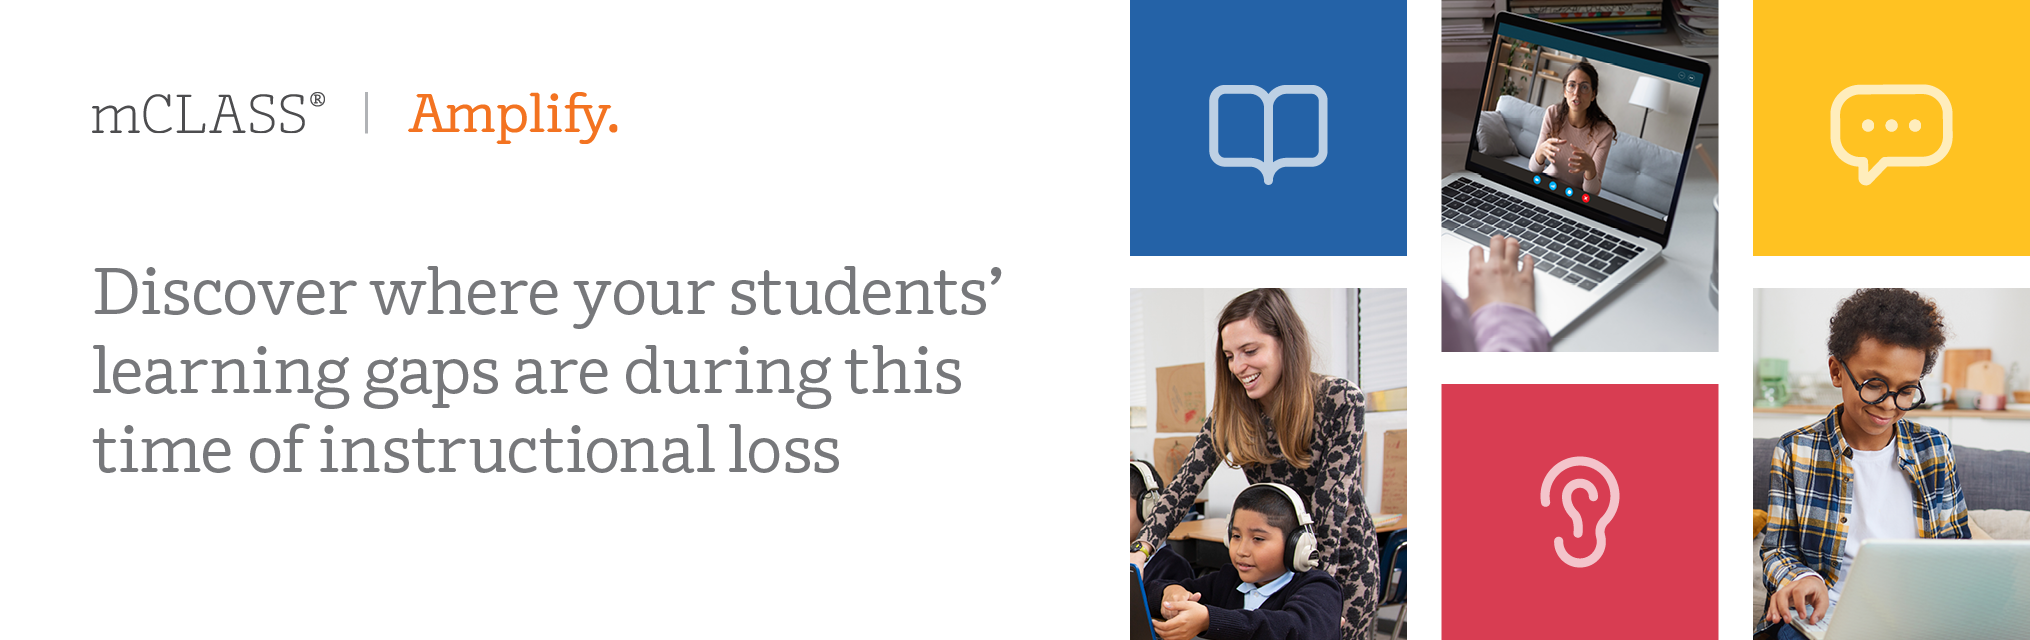 Discover where your students' learning gaps are during this time of instructional loss